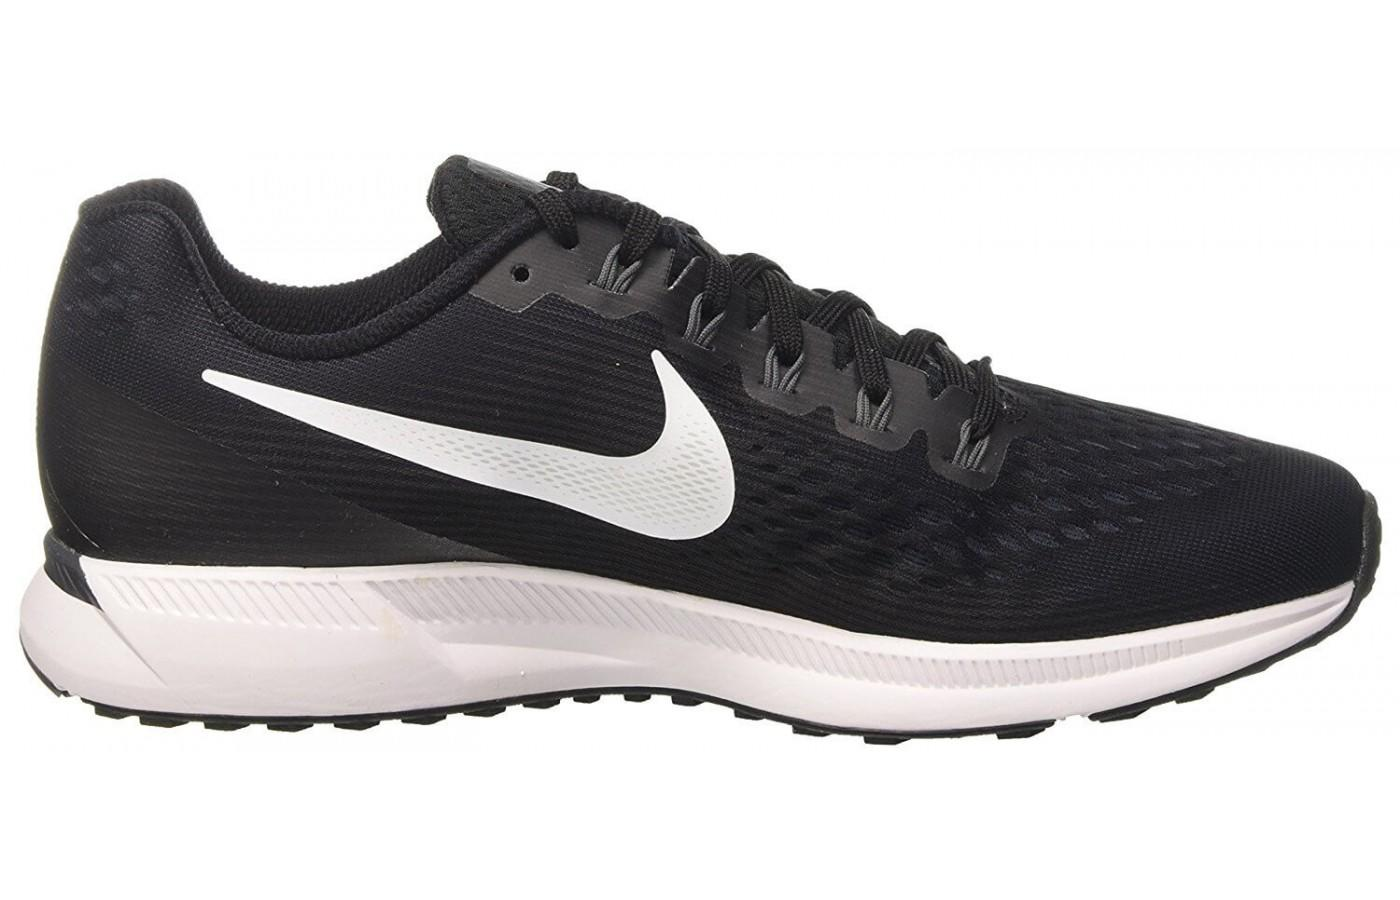 the Nike Air Zoom Pegasus 34 is stylish, affordable, and reasonably priced